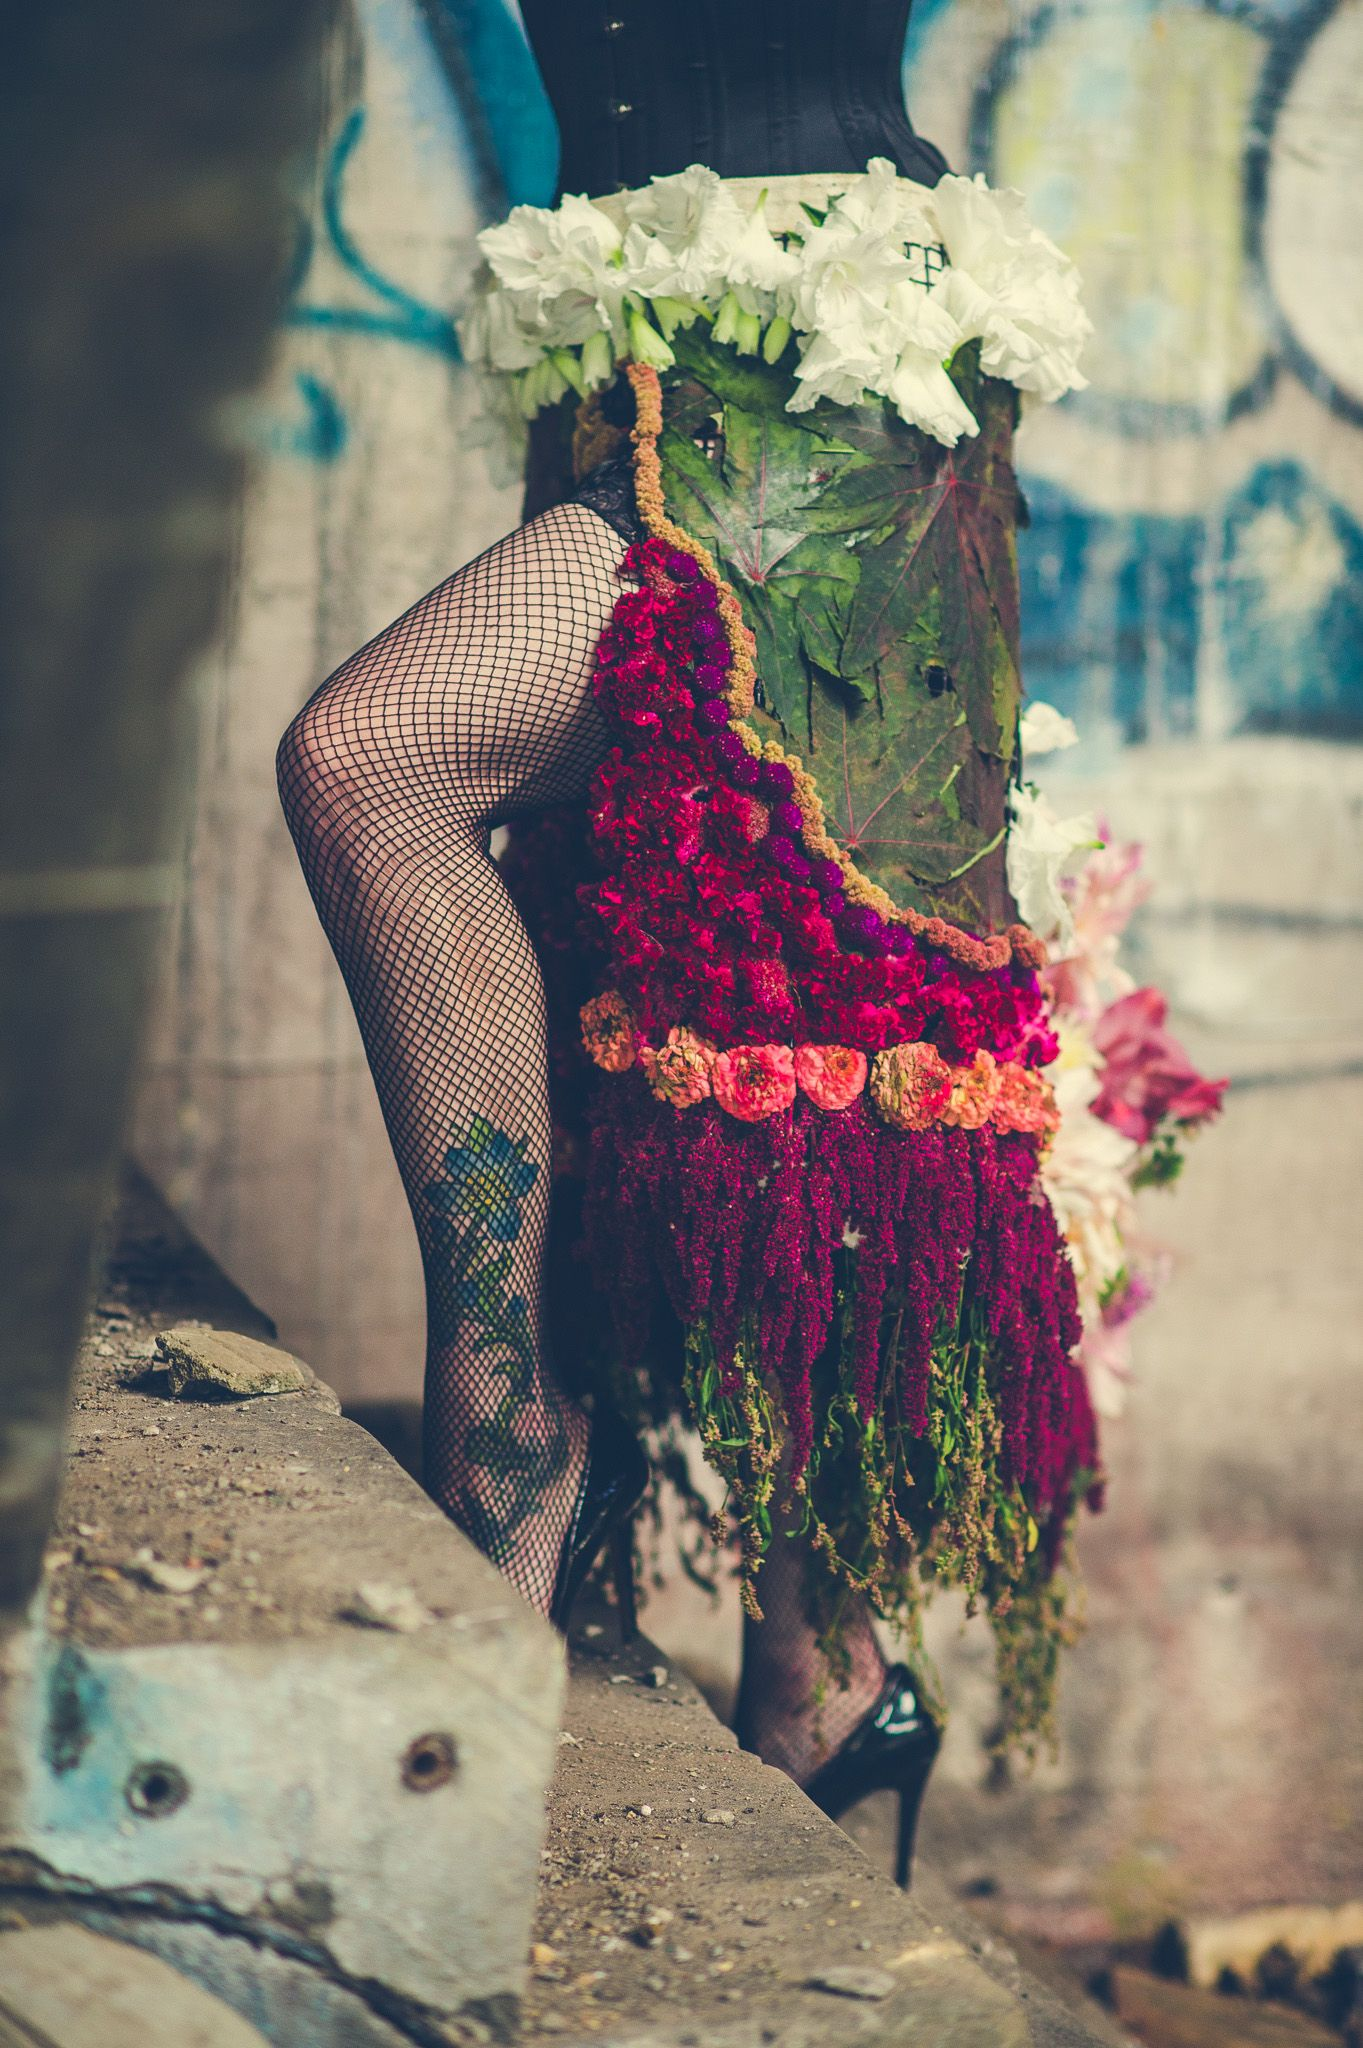 Skirt made with flowers Photo Credit:Brockit inc Model/Lingerie: VereDeVere Vintage Flowers: Rock River Farm